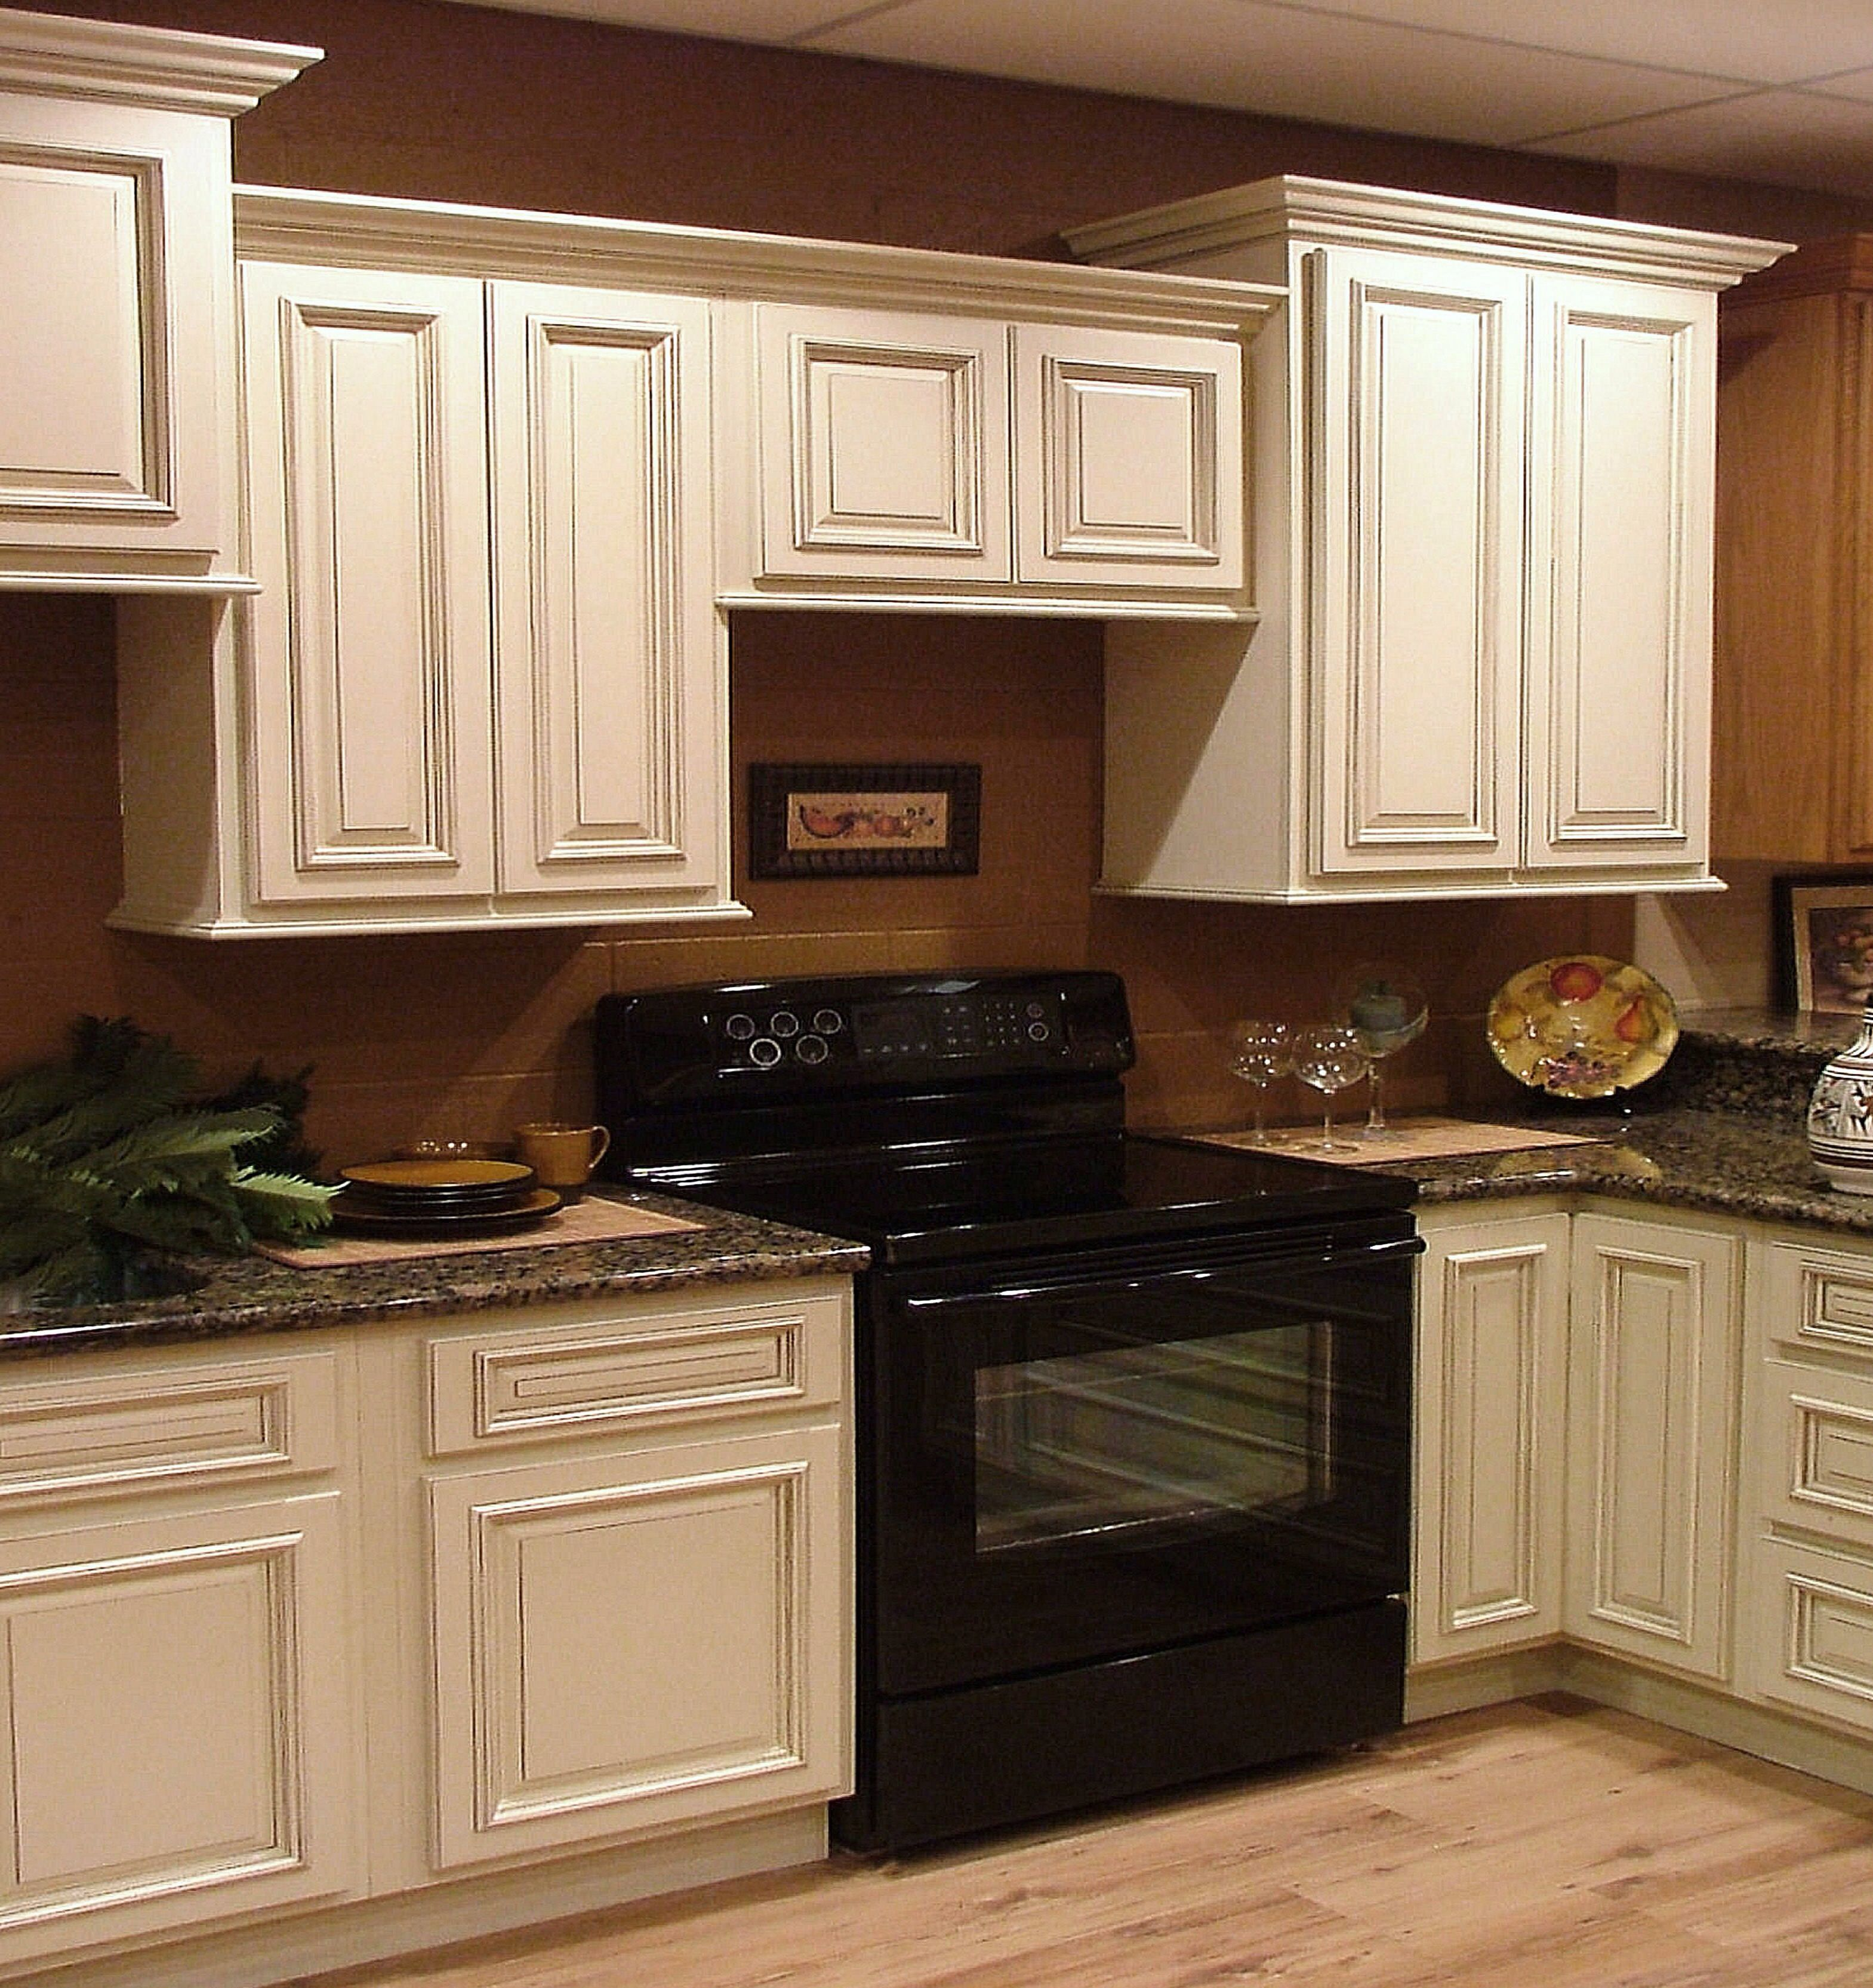 Brown Walls Cream Cabinets Antique White Kitchen Cabinets Antique White Kitchen Black Appliances Kitchen